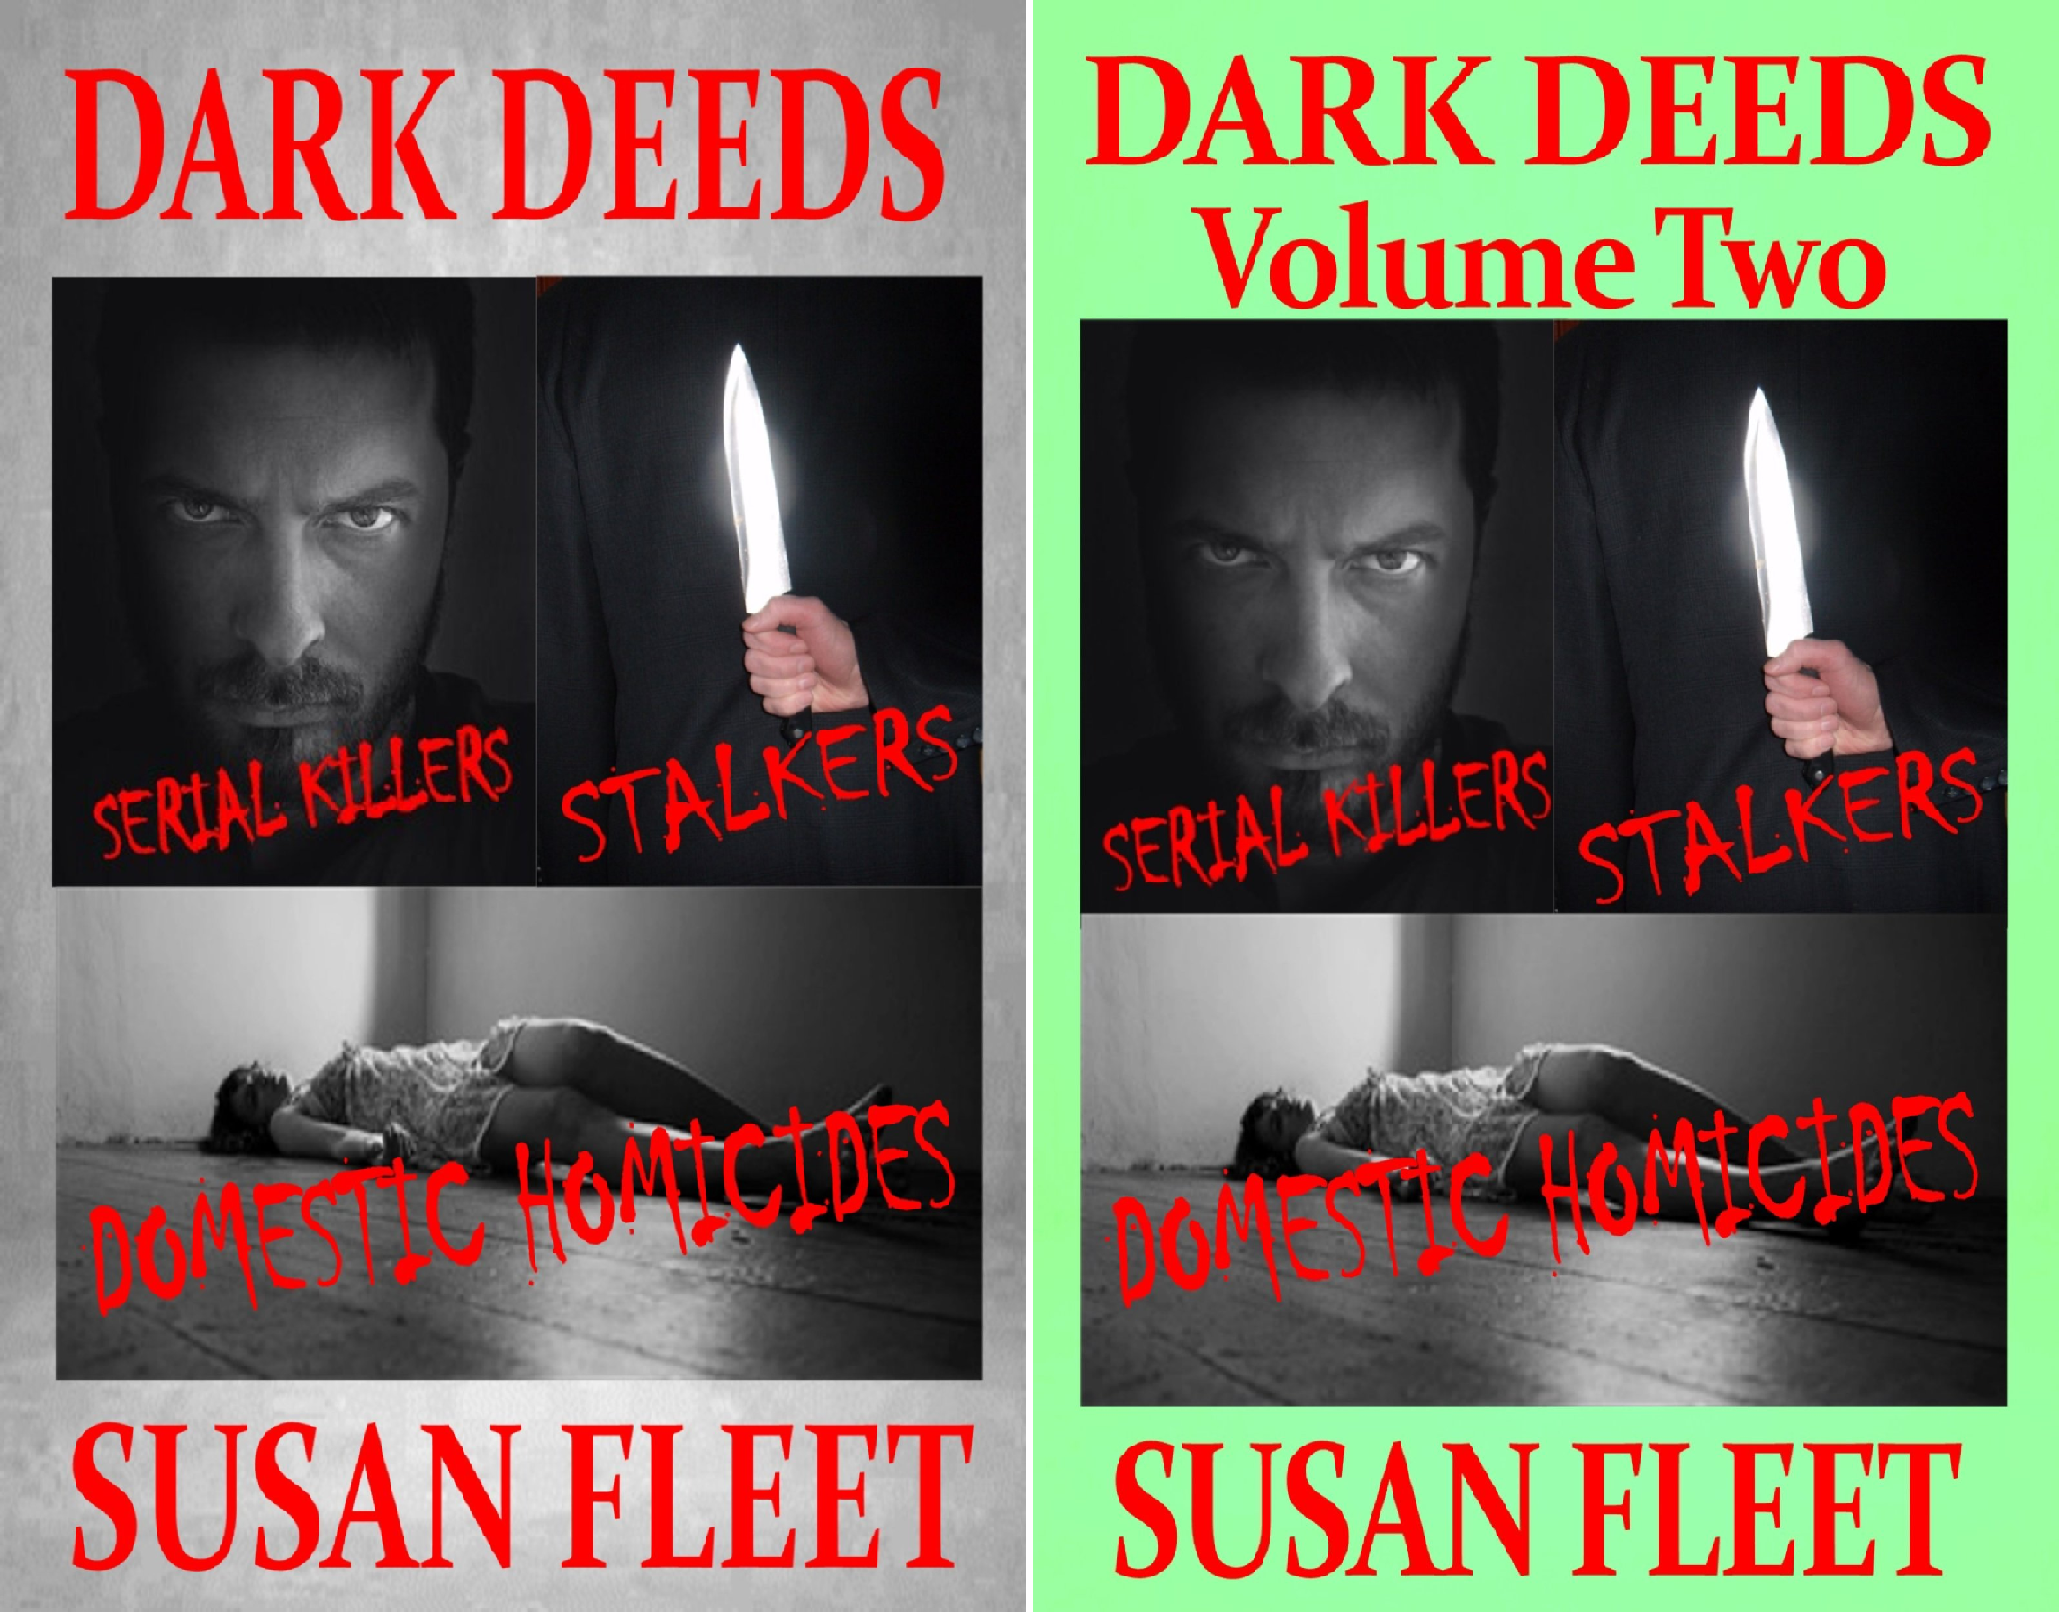 DARK DEEDS: Serial killers, stalkers and domestic homicides (2 Book Series)